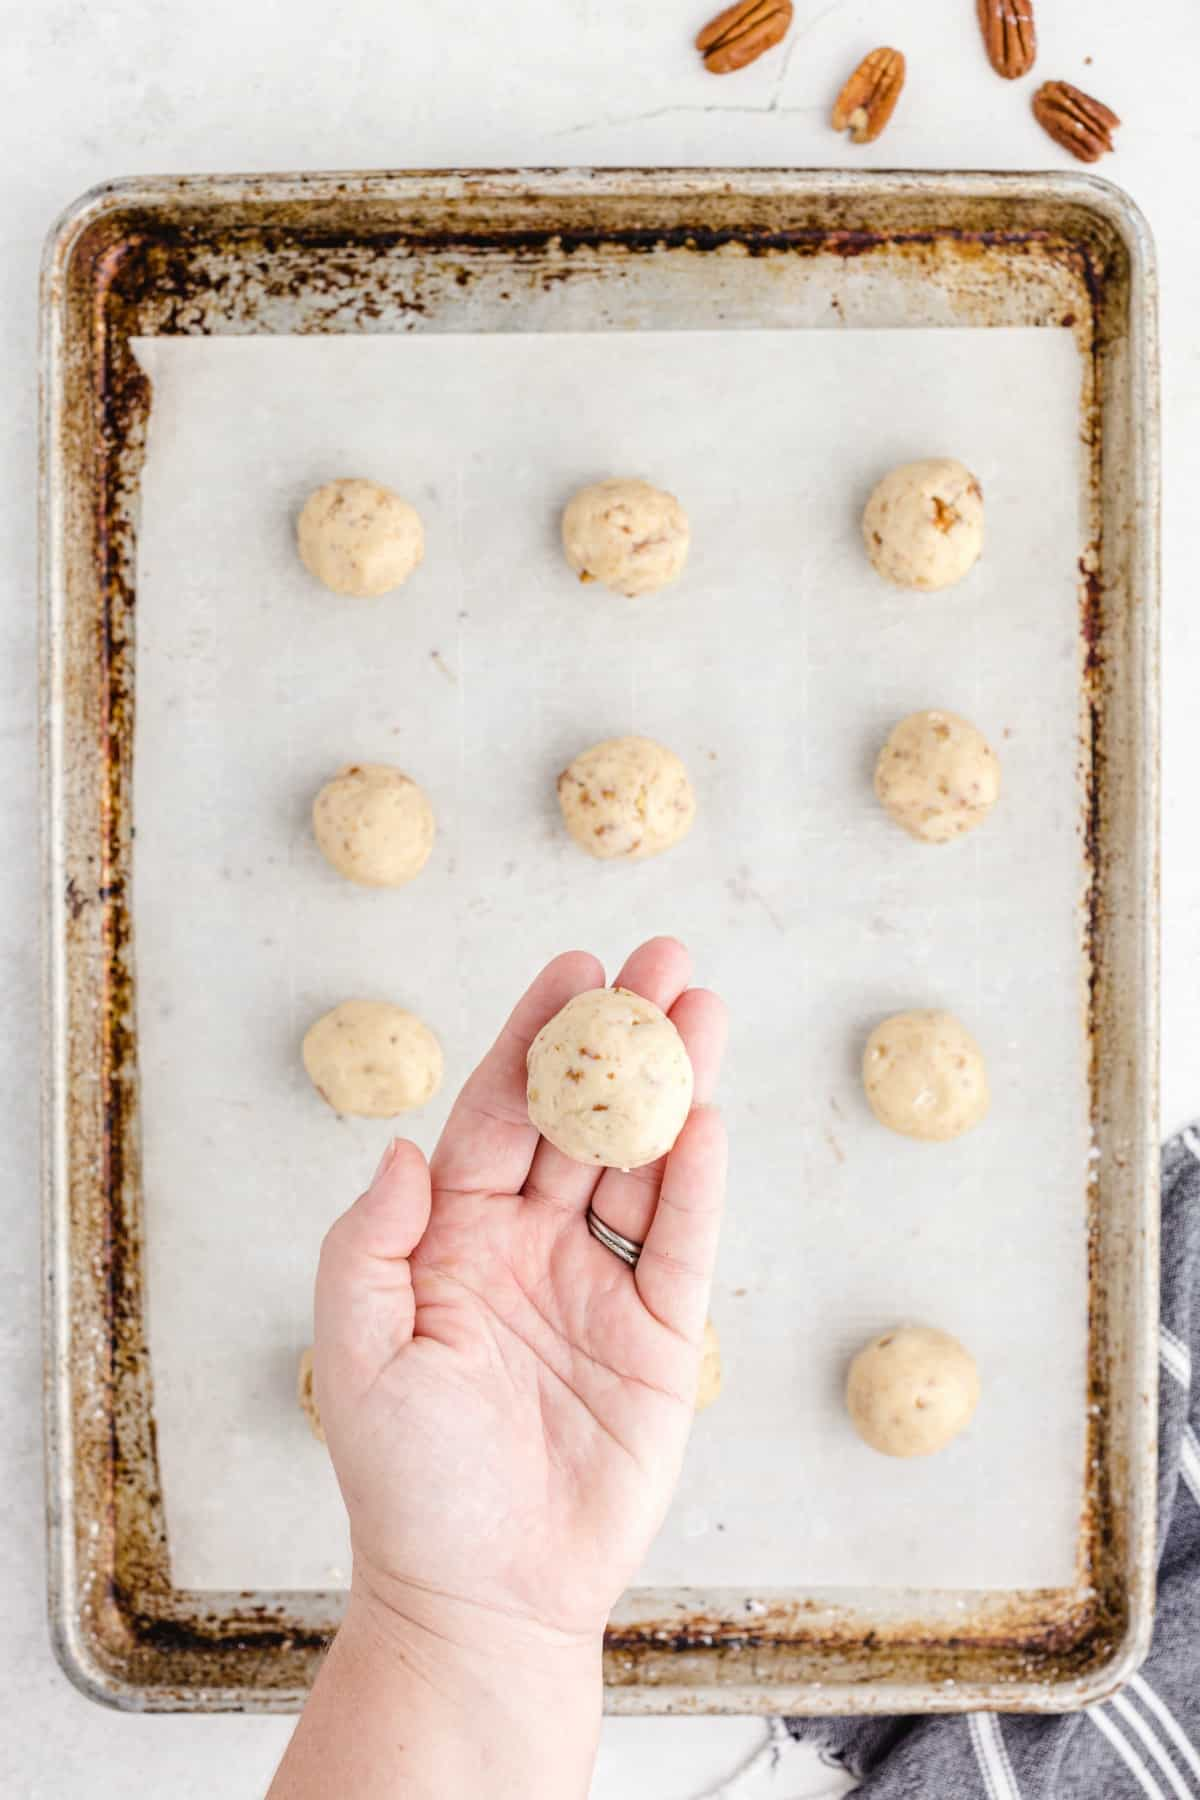 Cookies in a dough ball